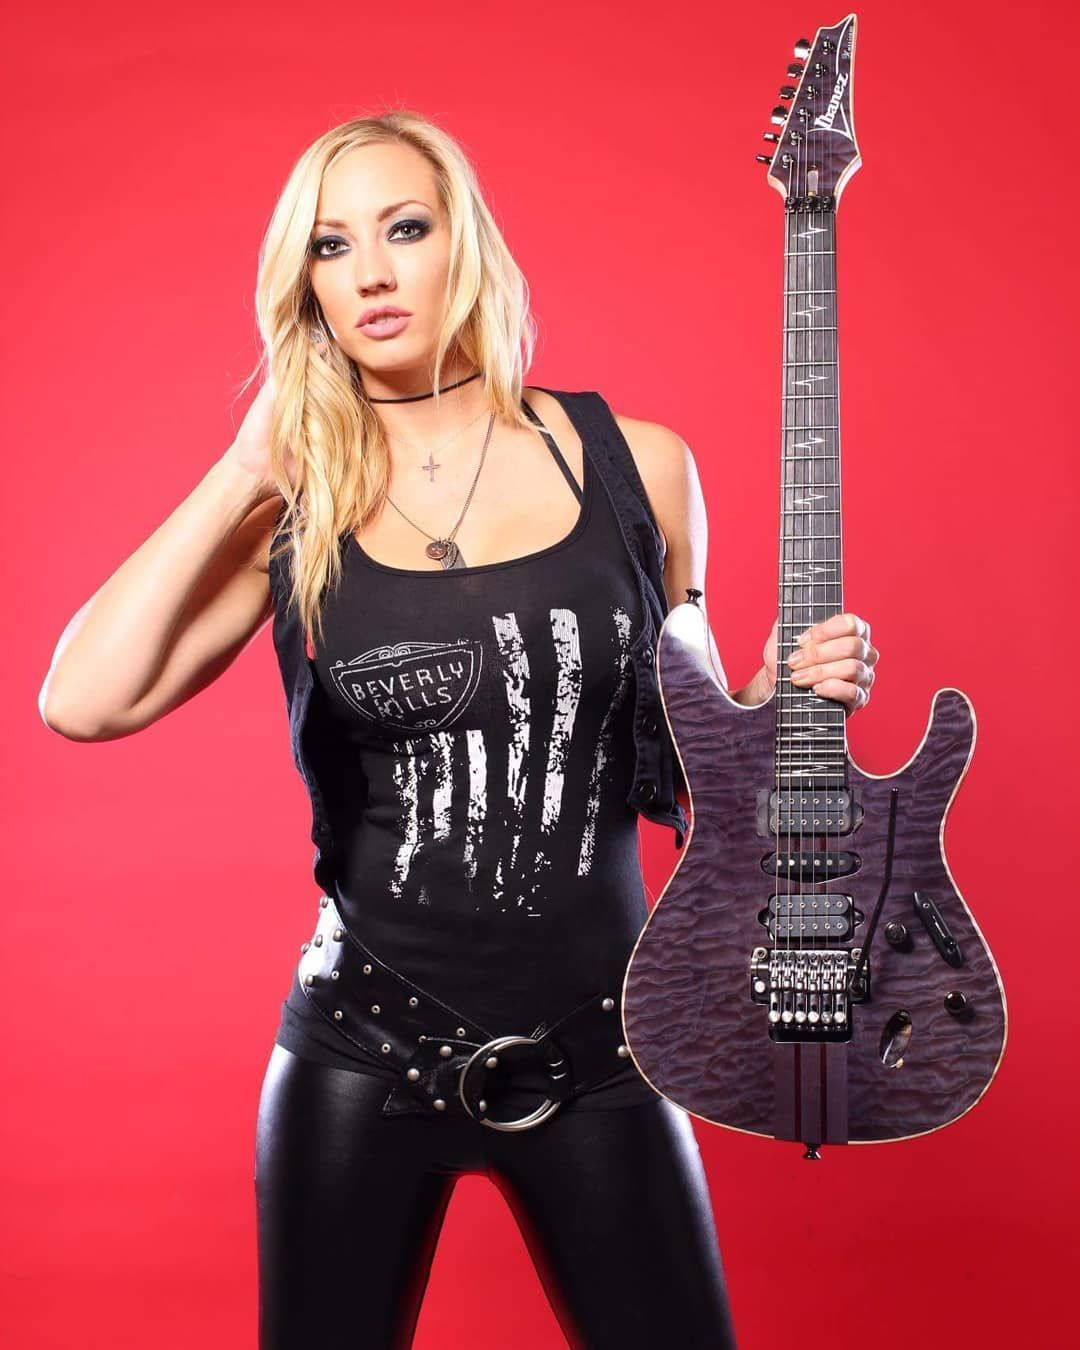 Nita Strauss Nita Strauss Heavy Metal Girl Women In Music